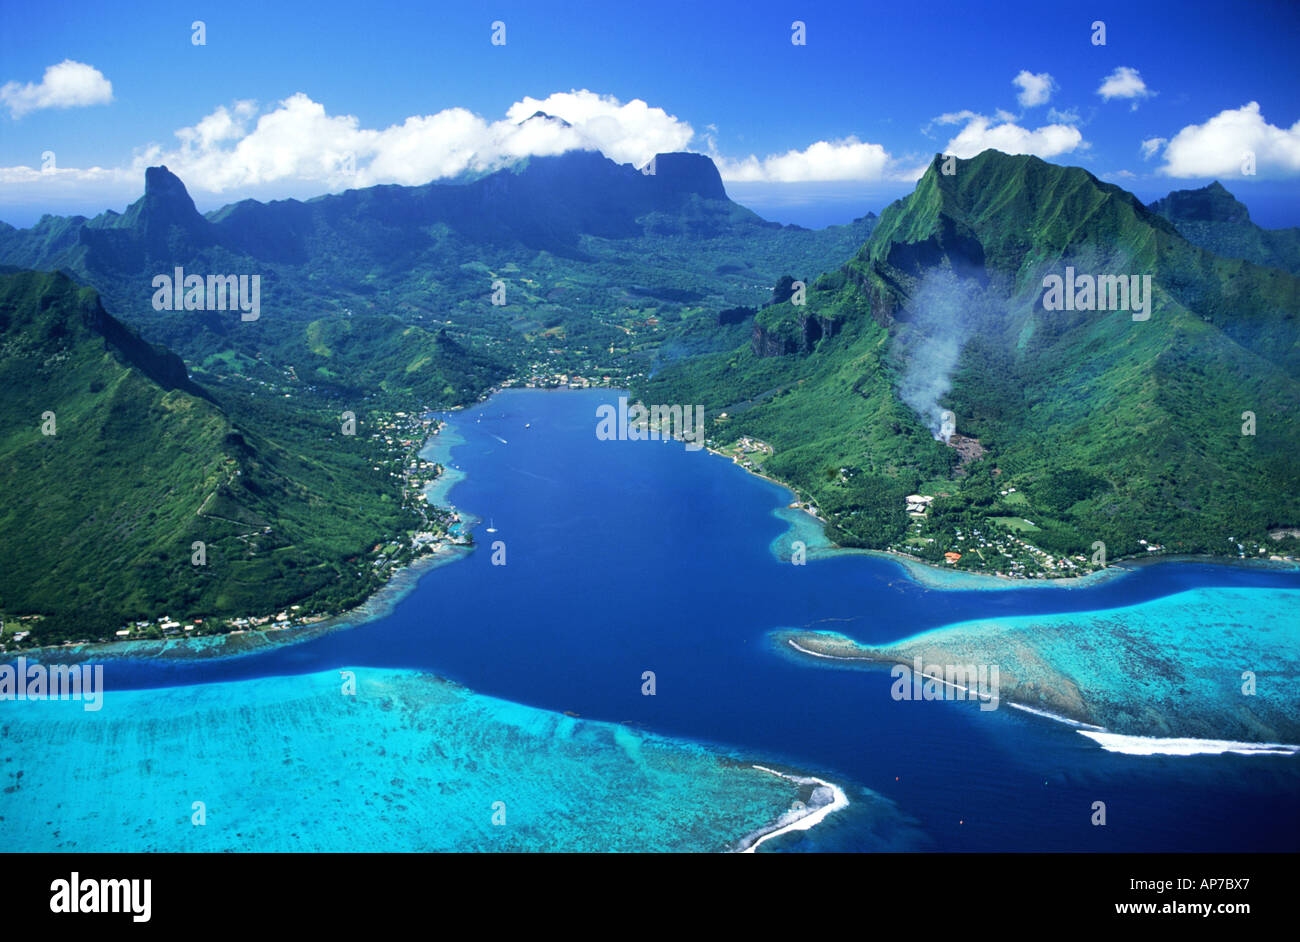 Aerial view of Cooks Bay and mountains on Island of Moorea swimming between blue skies and blue lagoons - Stock Image